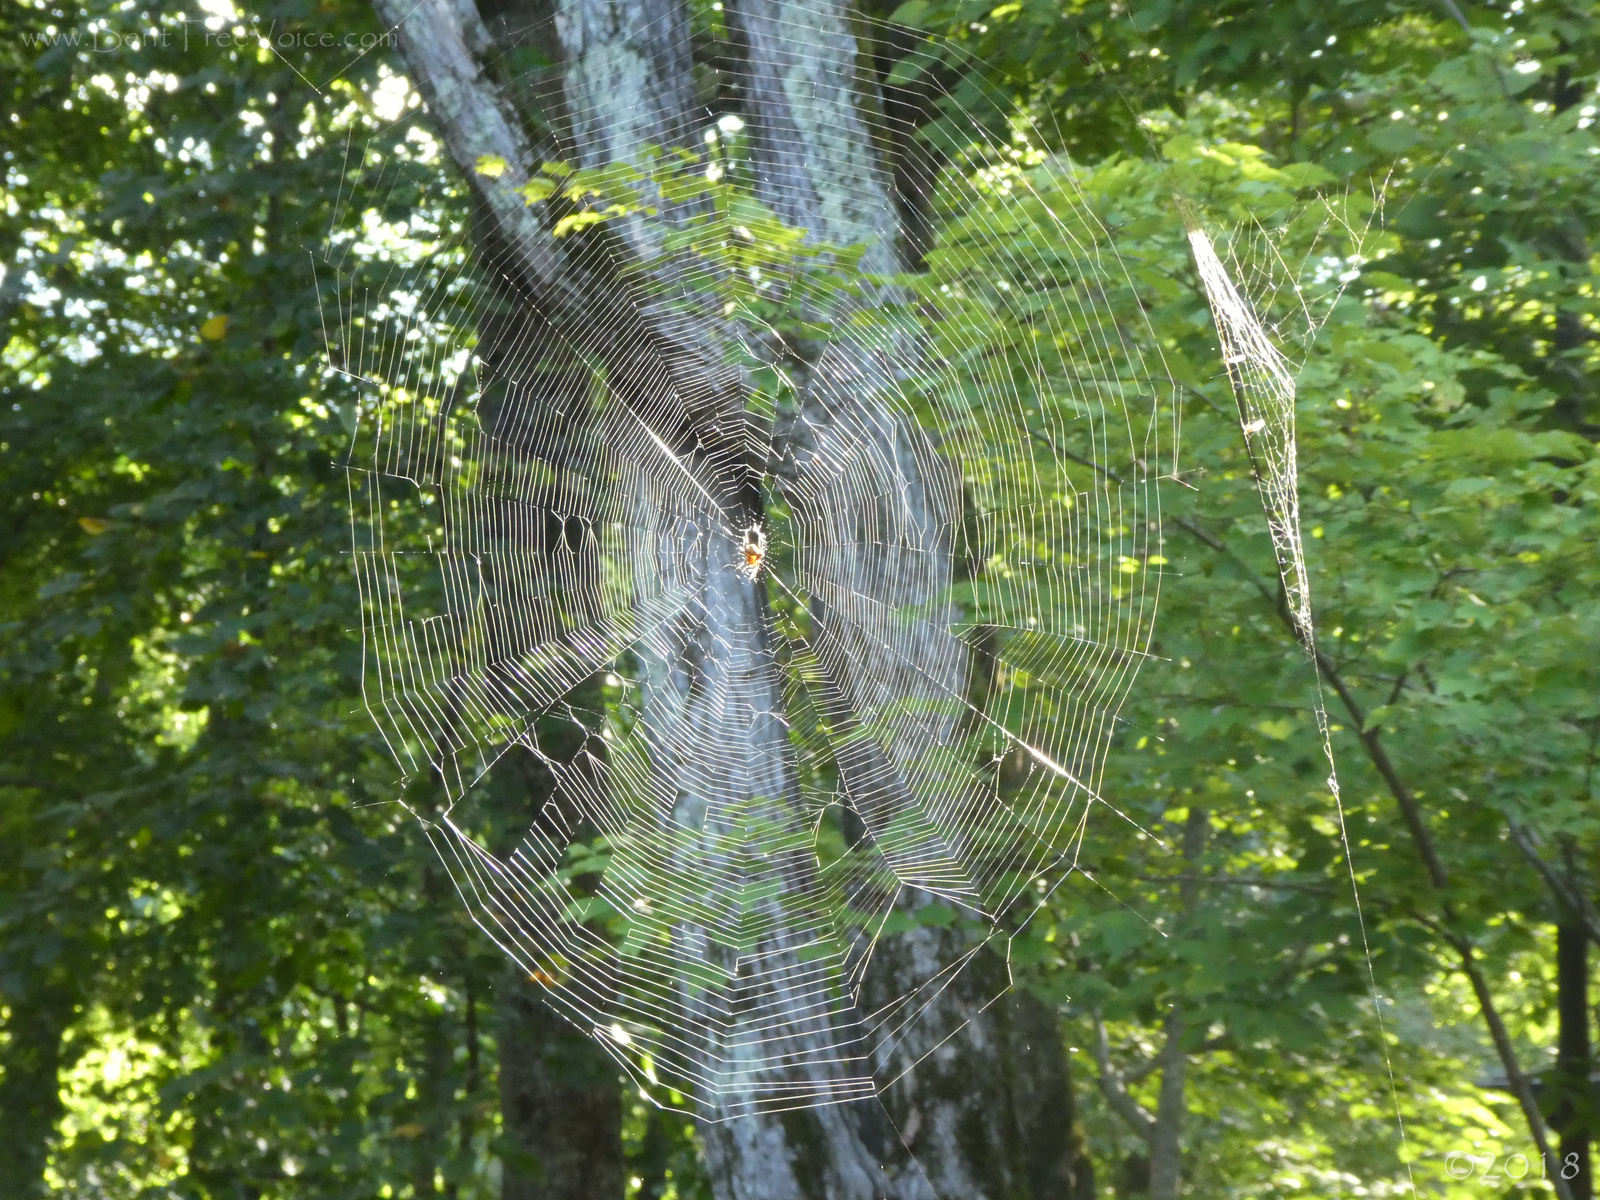 September 9, 2018 - Big spider web in Bent Tree